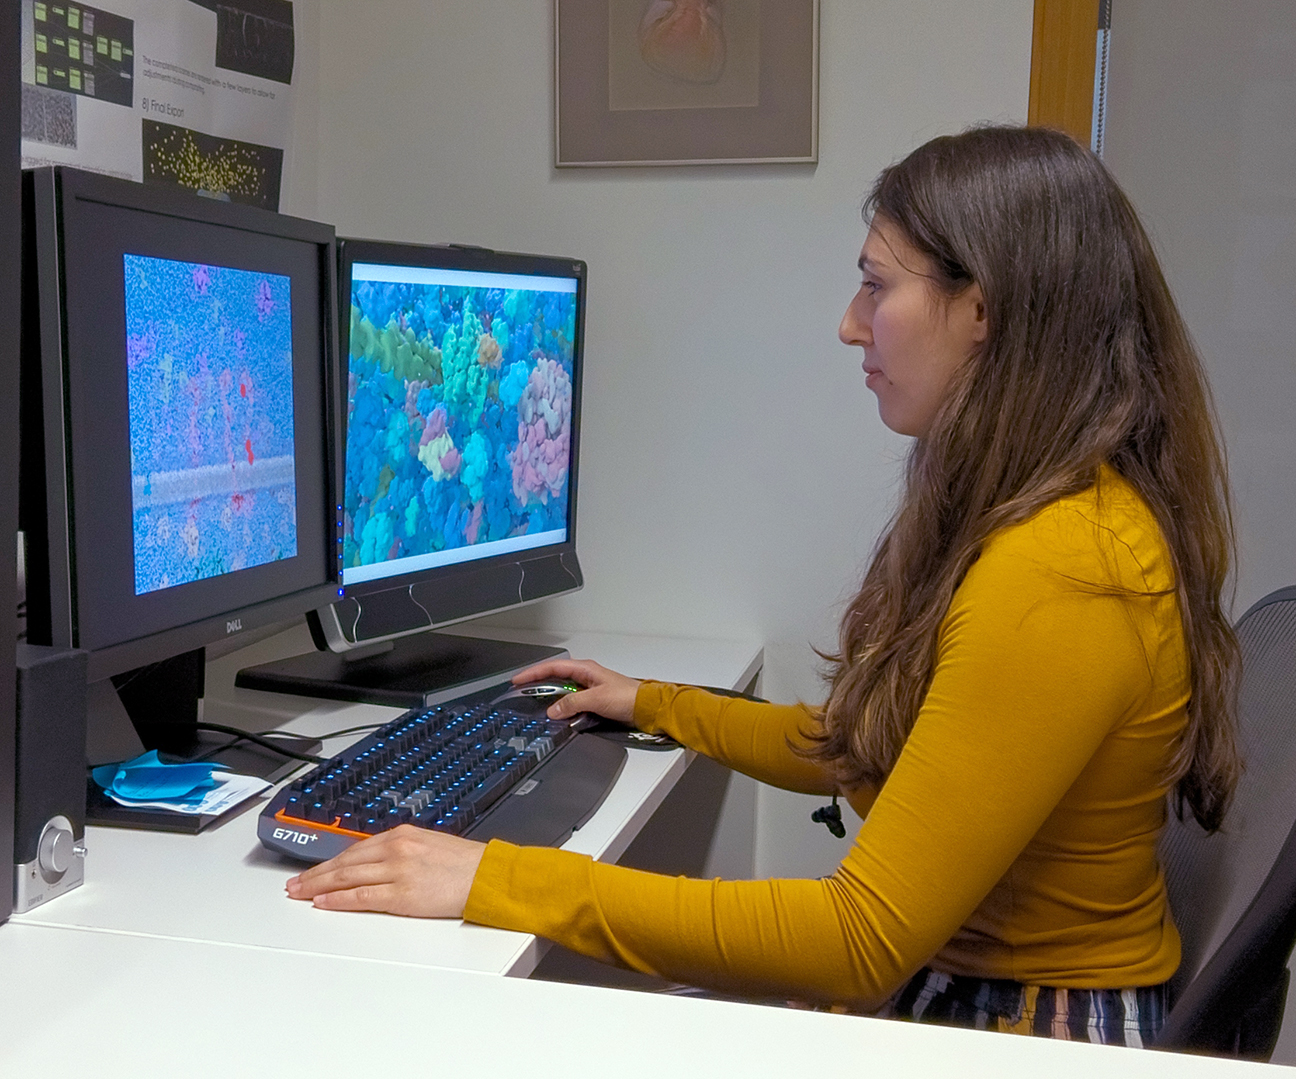 BMC student Avesta Rastan operating a Tobii T60XL eye tracking system. Eye-tracking technology is used to evaluate where audiences are looking as they consume visual media.